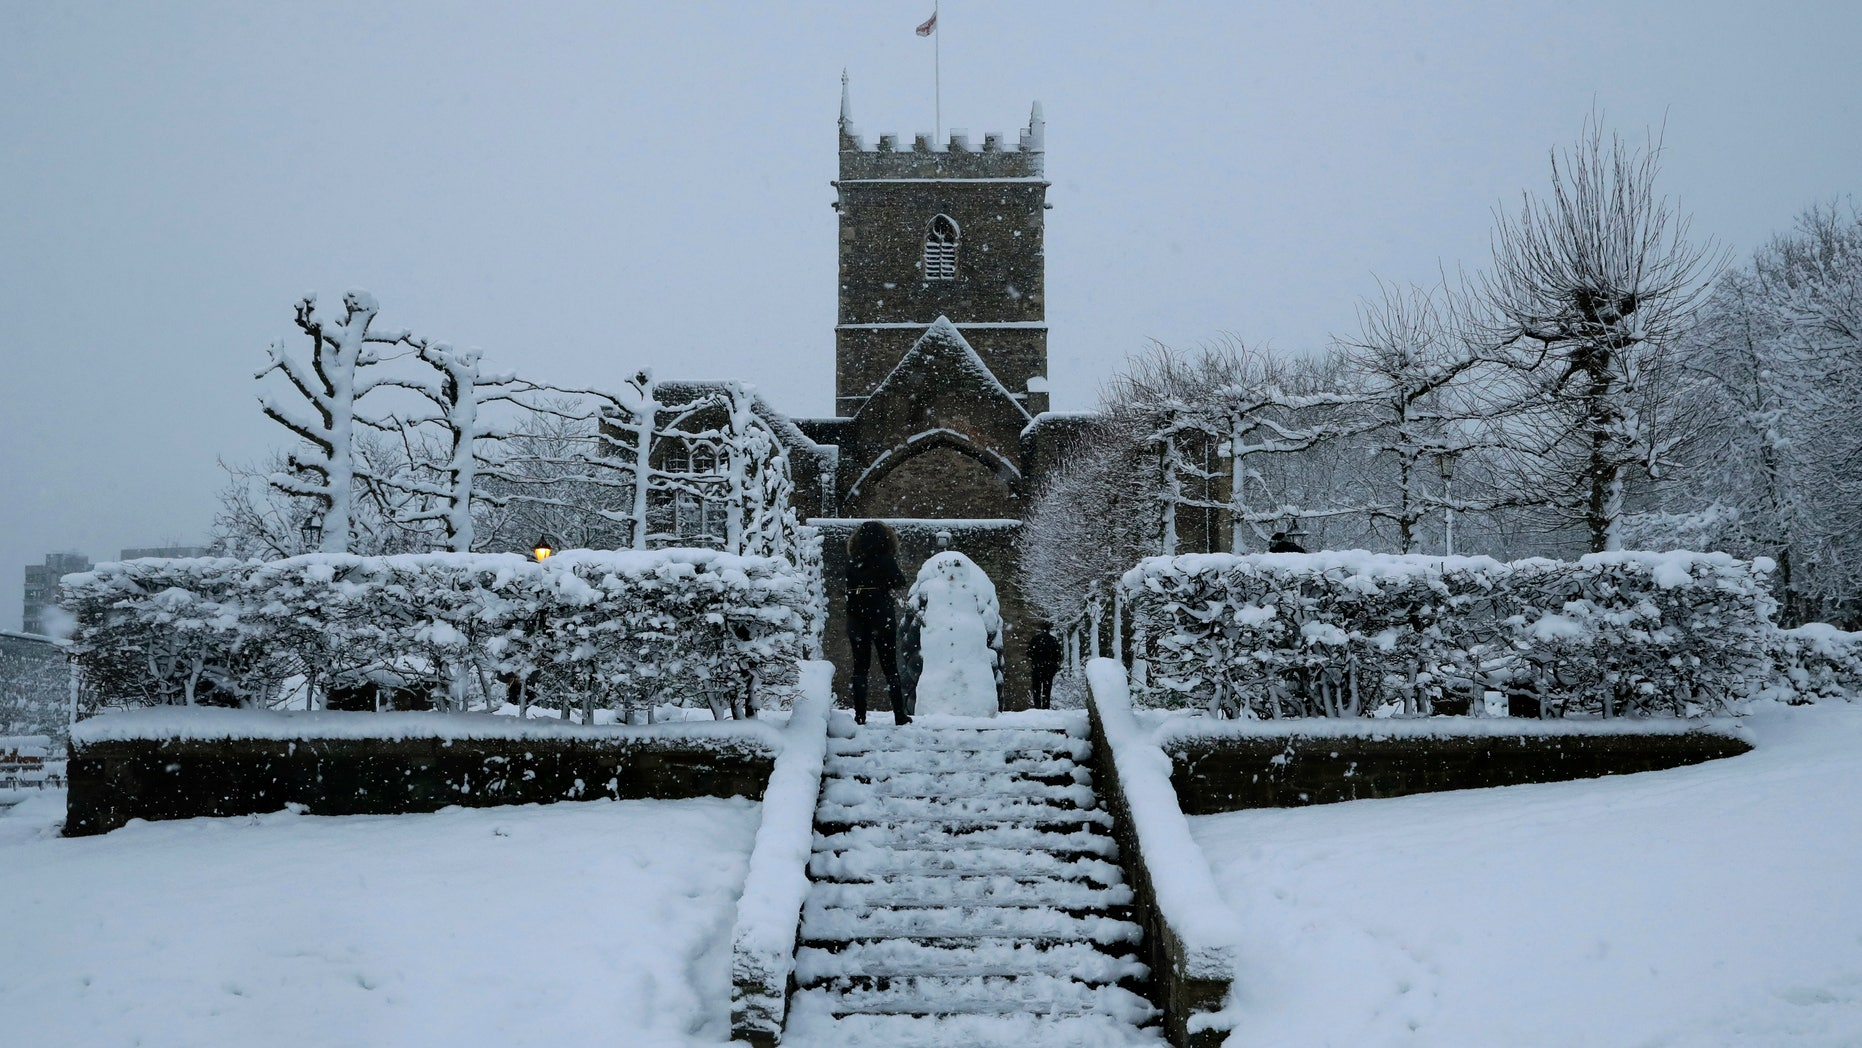 FILE - In this file photo dated Friday, Feb. 1, 2019, snow falls over St Peter's Church in Bristol, southwest England. The Church of England's governing Synod on Friday Feb. 22, 2019, lifted a 400-year-old rule requiring all churches to hold services every Sunday, acknowledging the reality of shrinking congregations and overworked priests. (AP Photo/Matt Dunham, FILE)